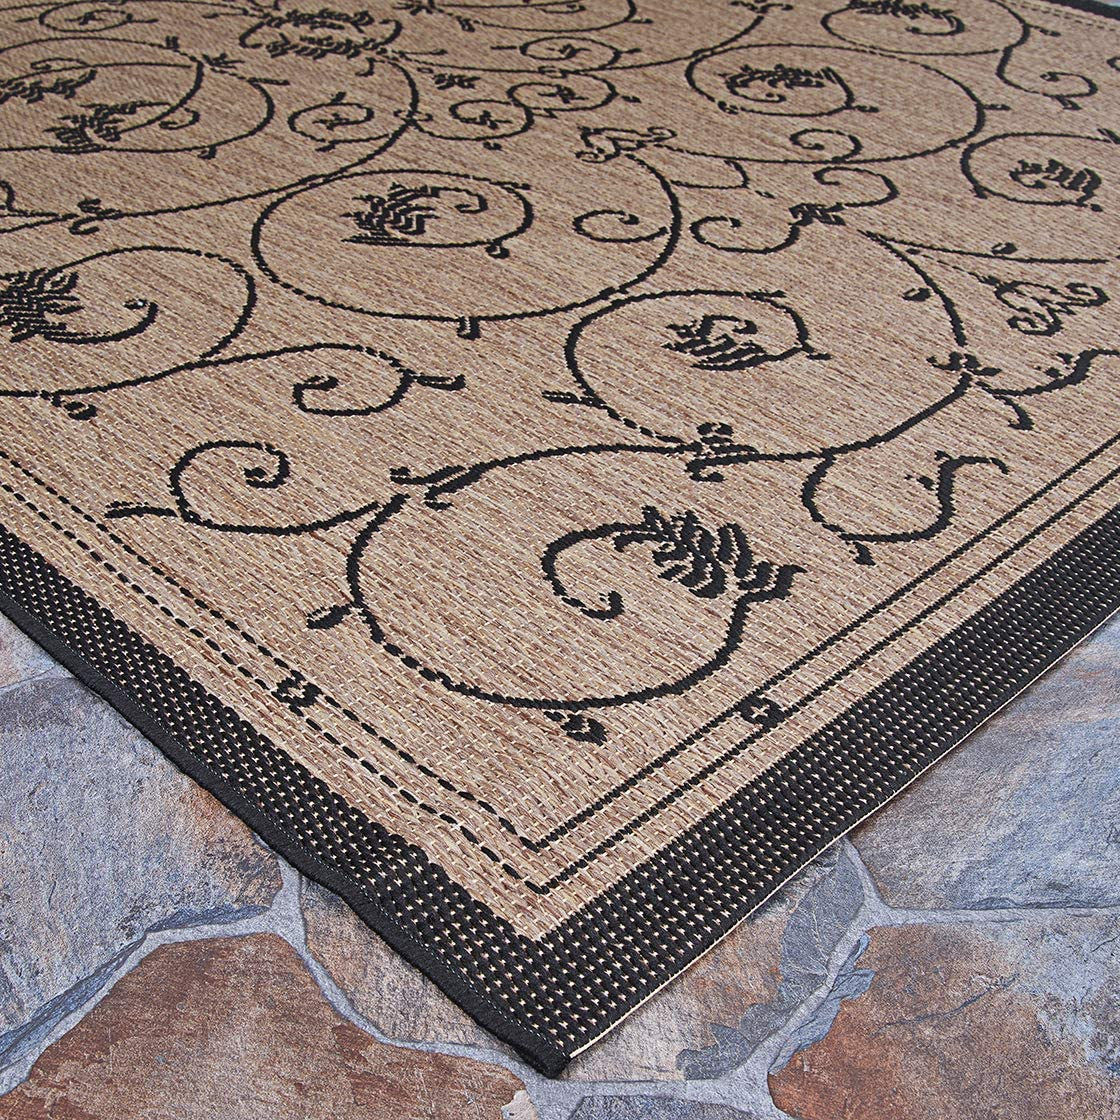 Couristan Recife Veranda 7-Feet 6-Inch by 10-Feet 9-Inch Rug, Cocoa and Black